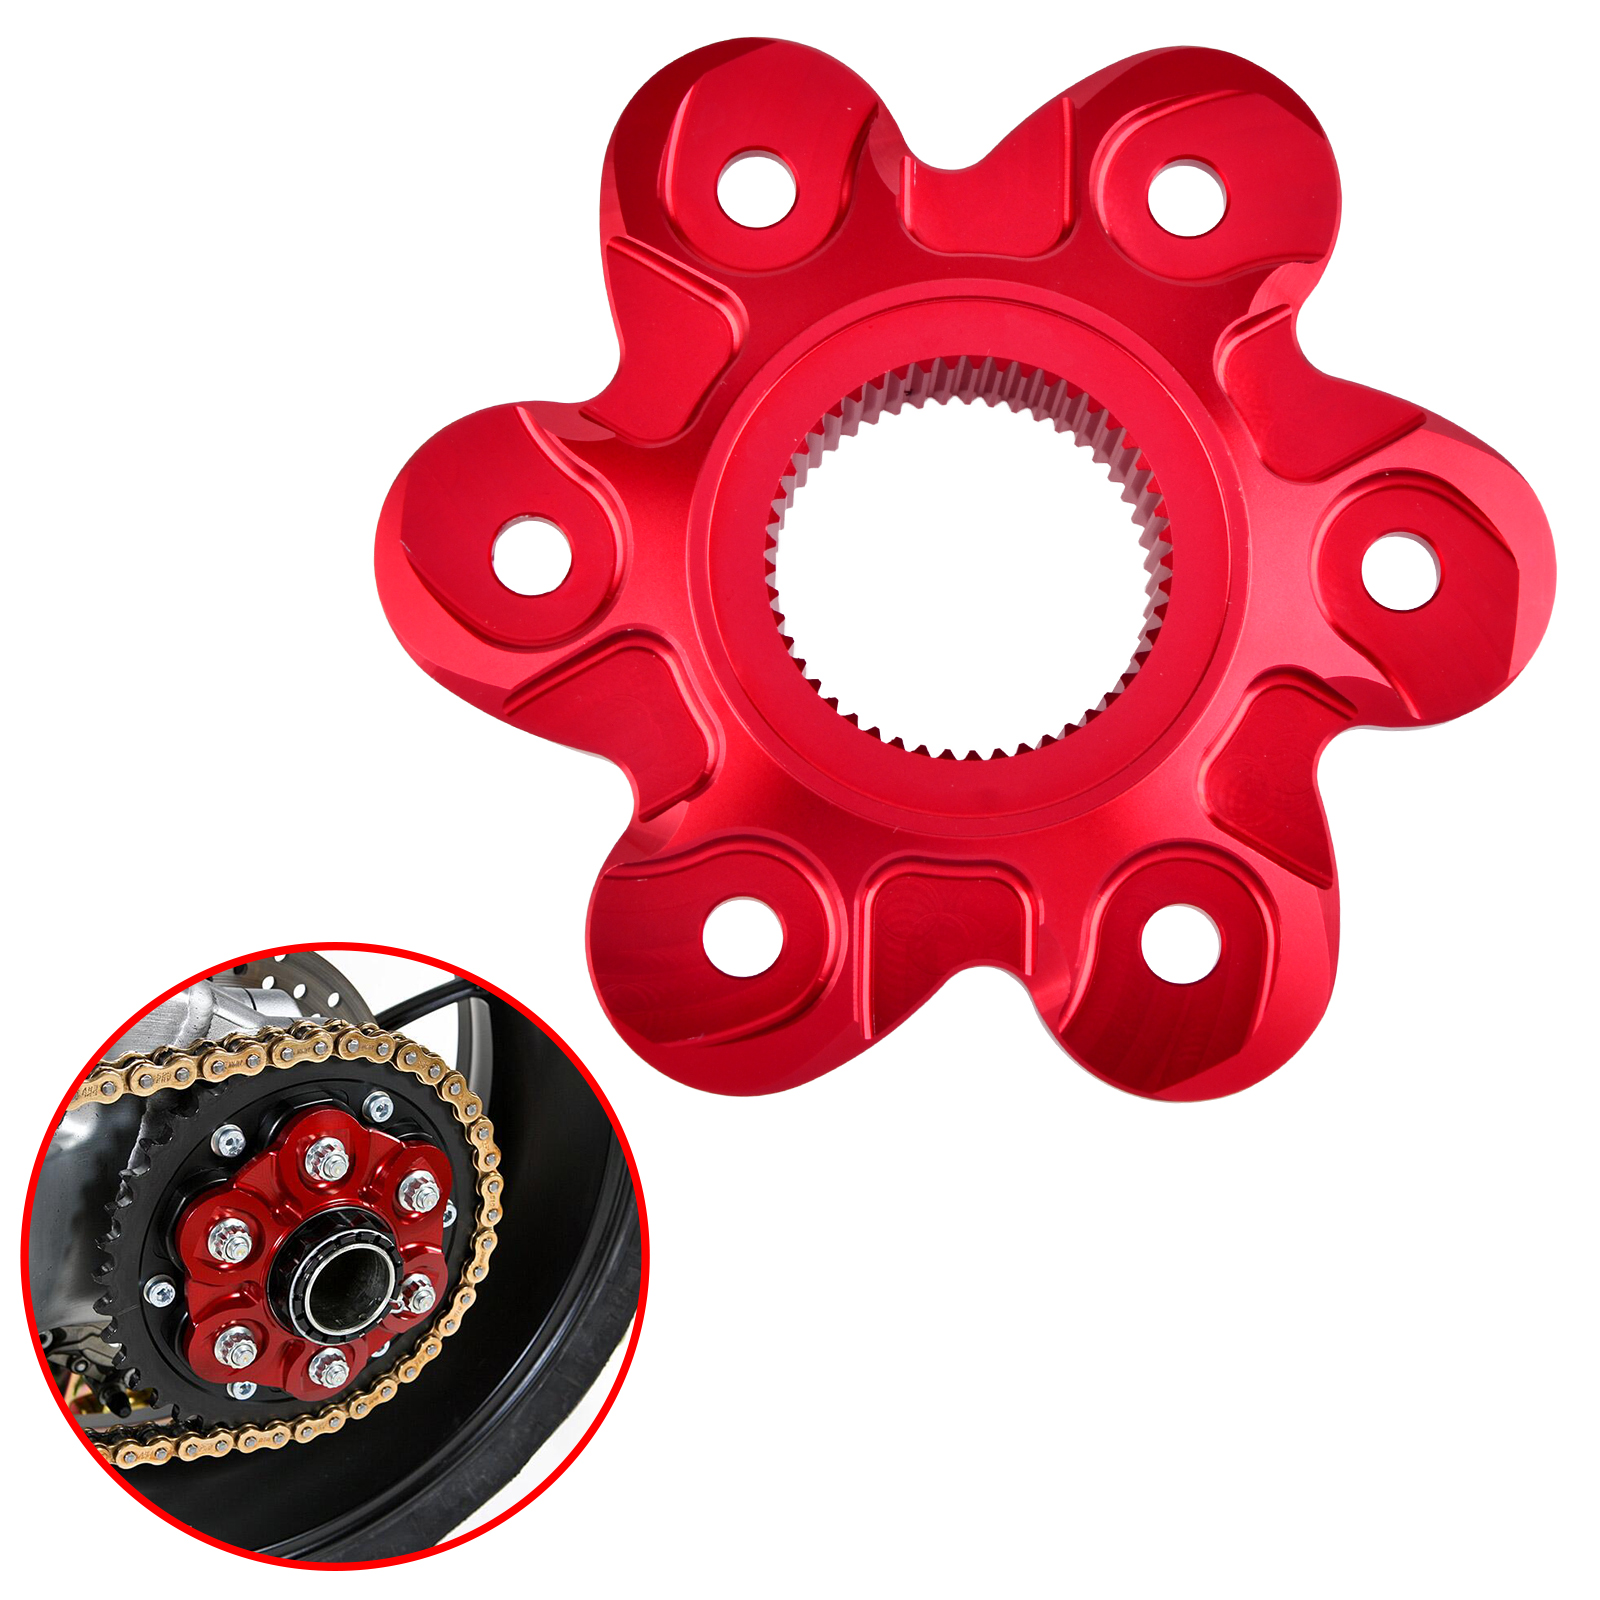 Rear Sprocket Cover Drive Flange Cover For Ducati Superbike 1098 1198 1199 1299 Monster 1200 Diavel